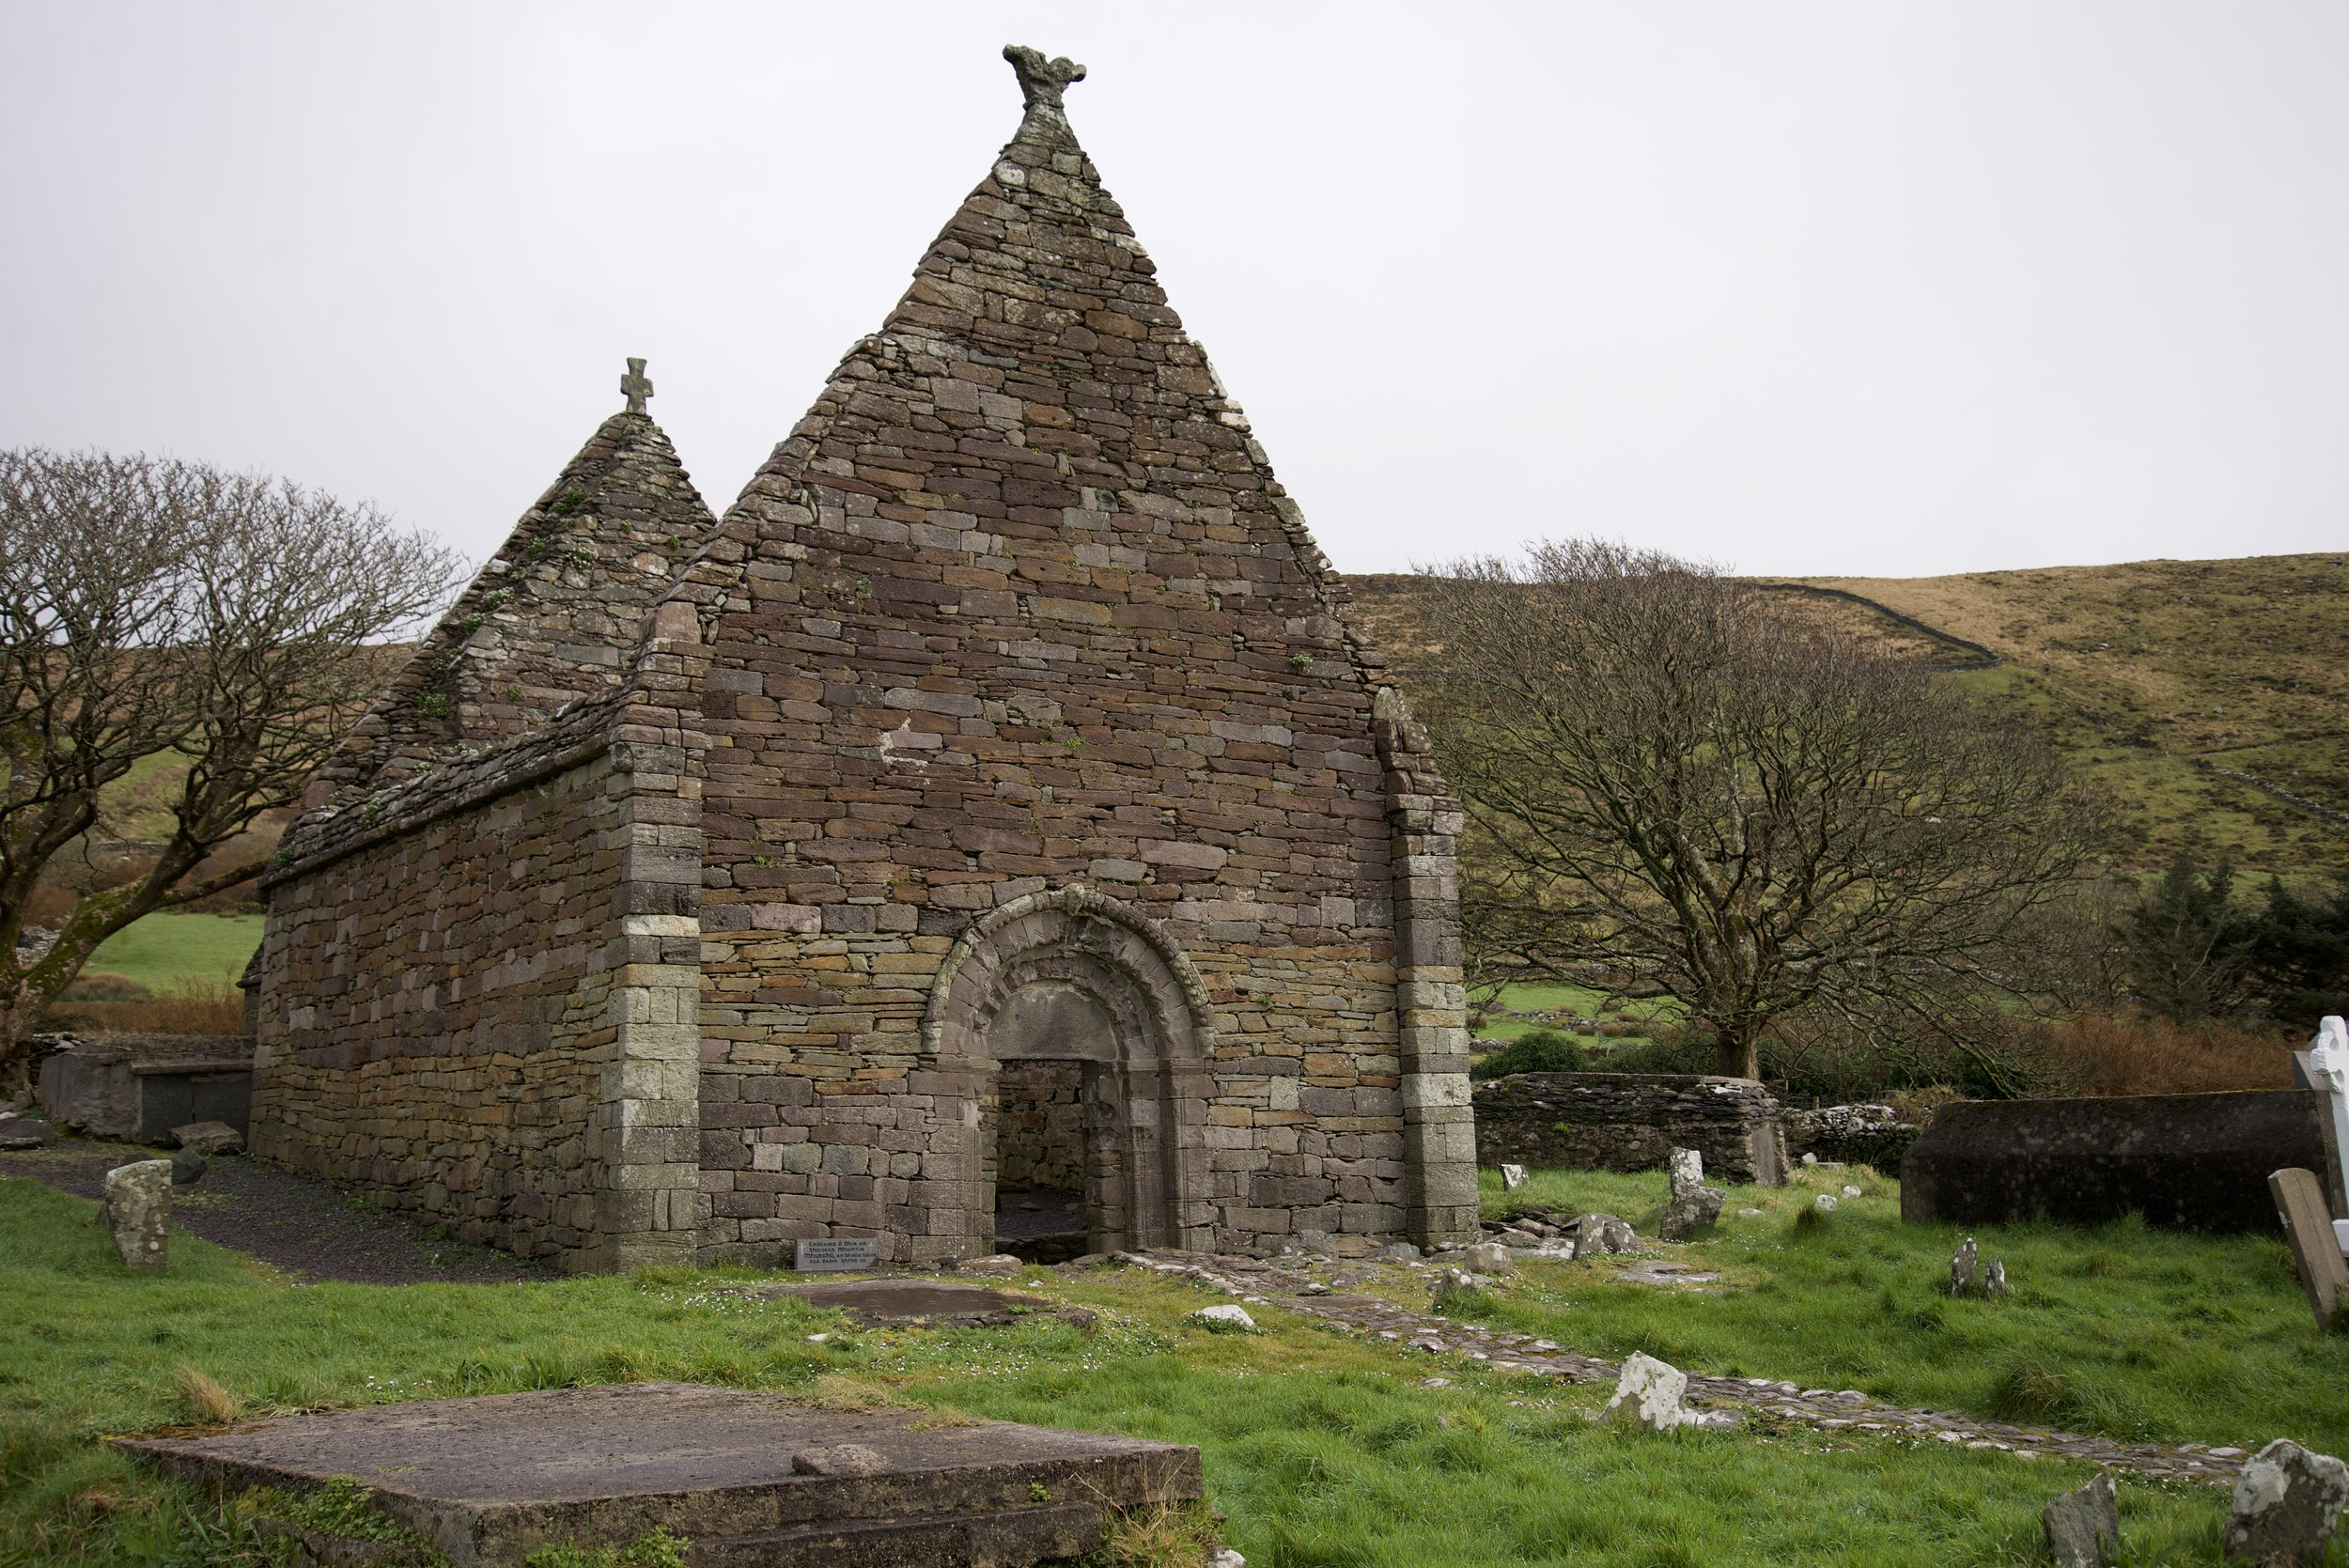 This is the ruined church of Kilmalkedar, an old Normal center of worship on the Dingle peninsula.